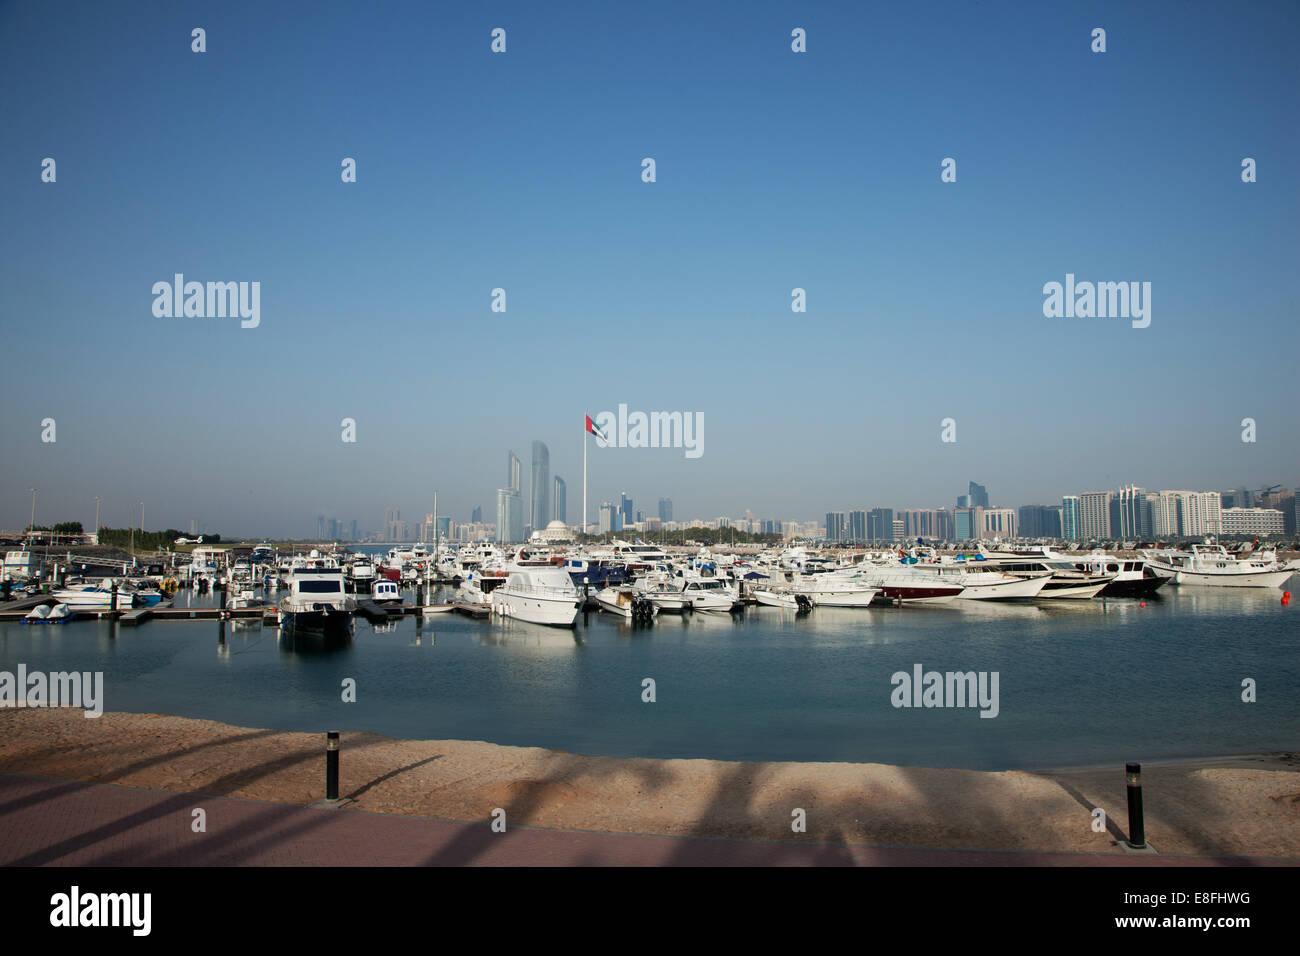 Emirats arabes unis, Abu Dhabi, Skyline avec Harbour en premier plan Photo Stock